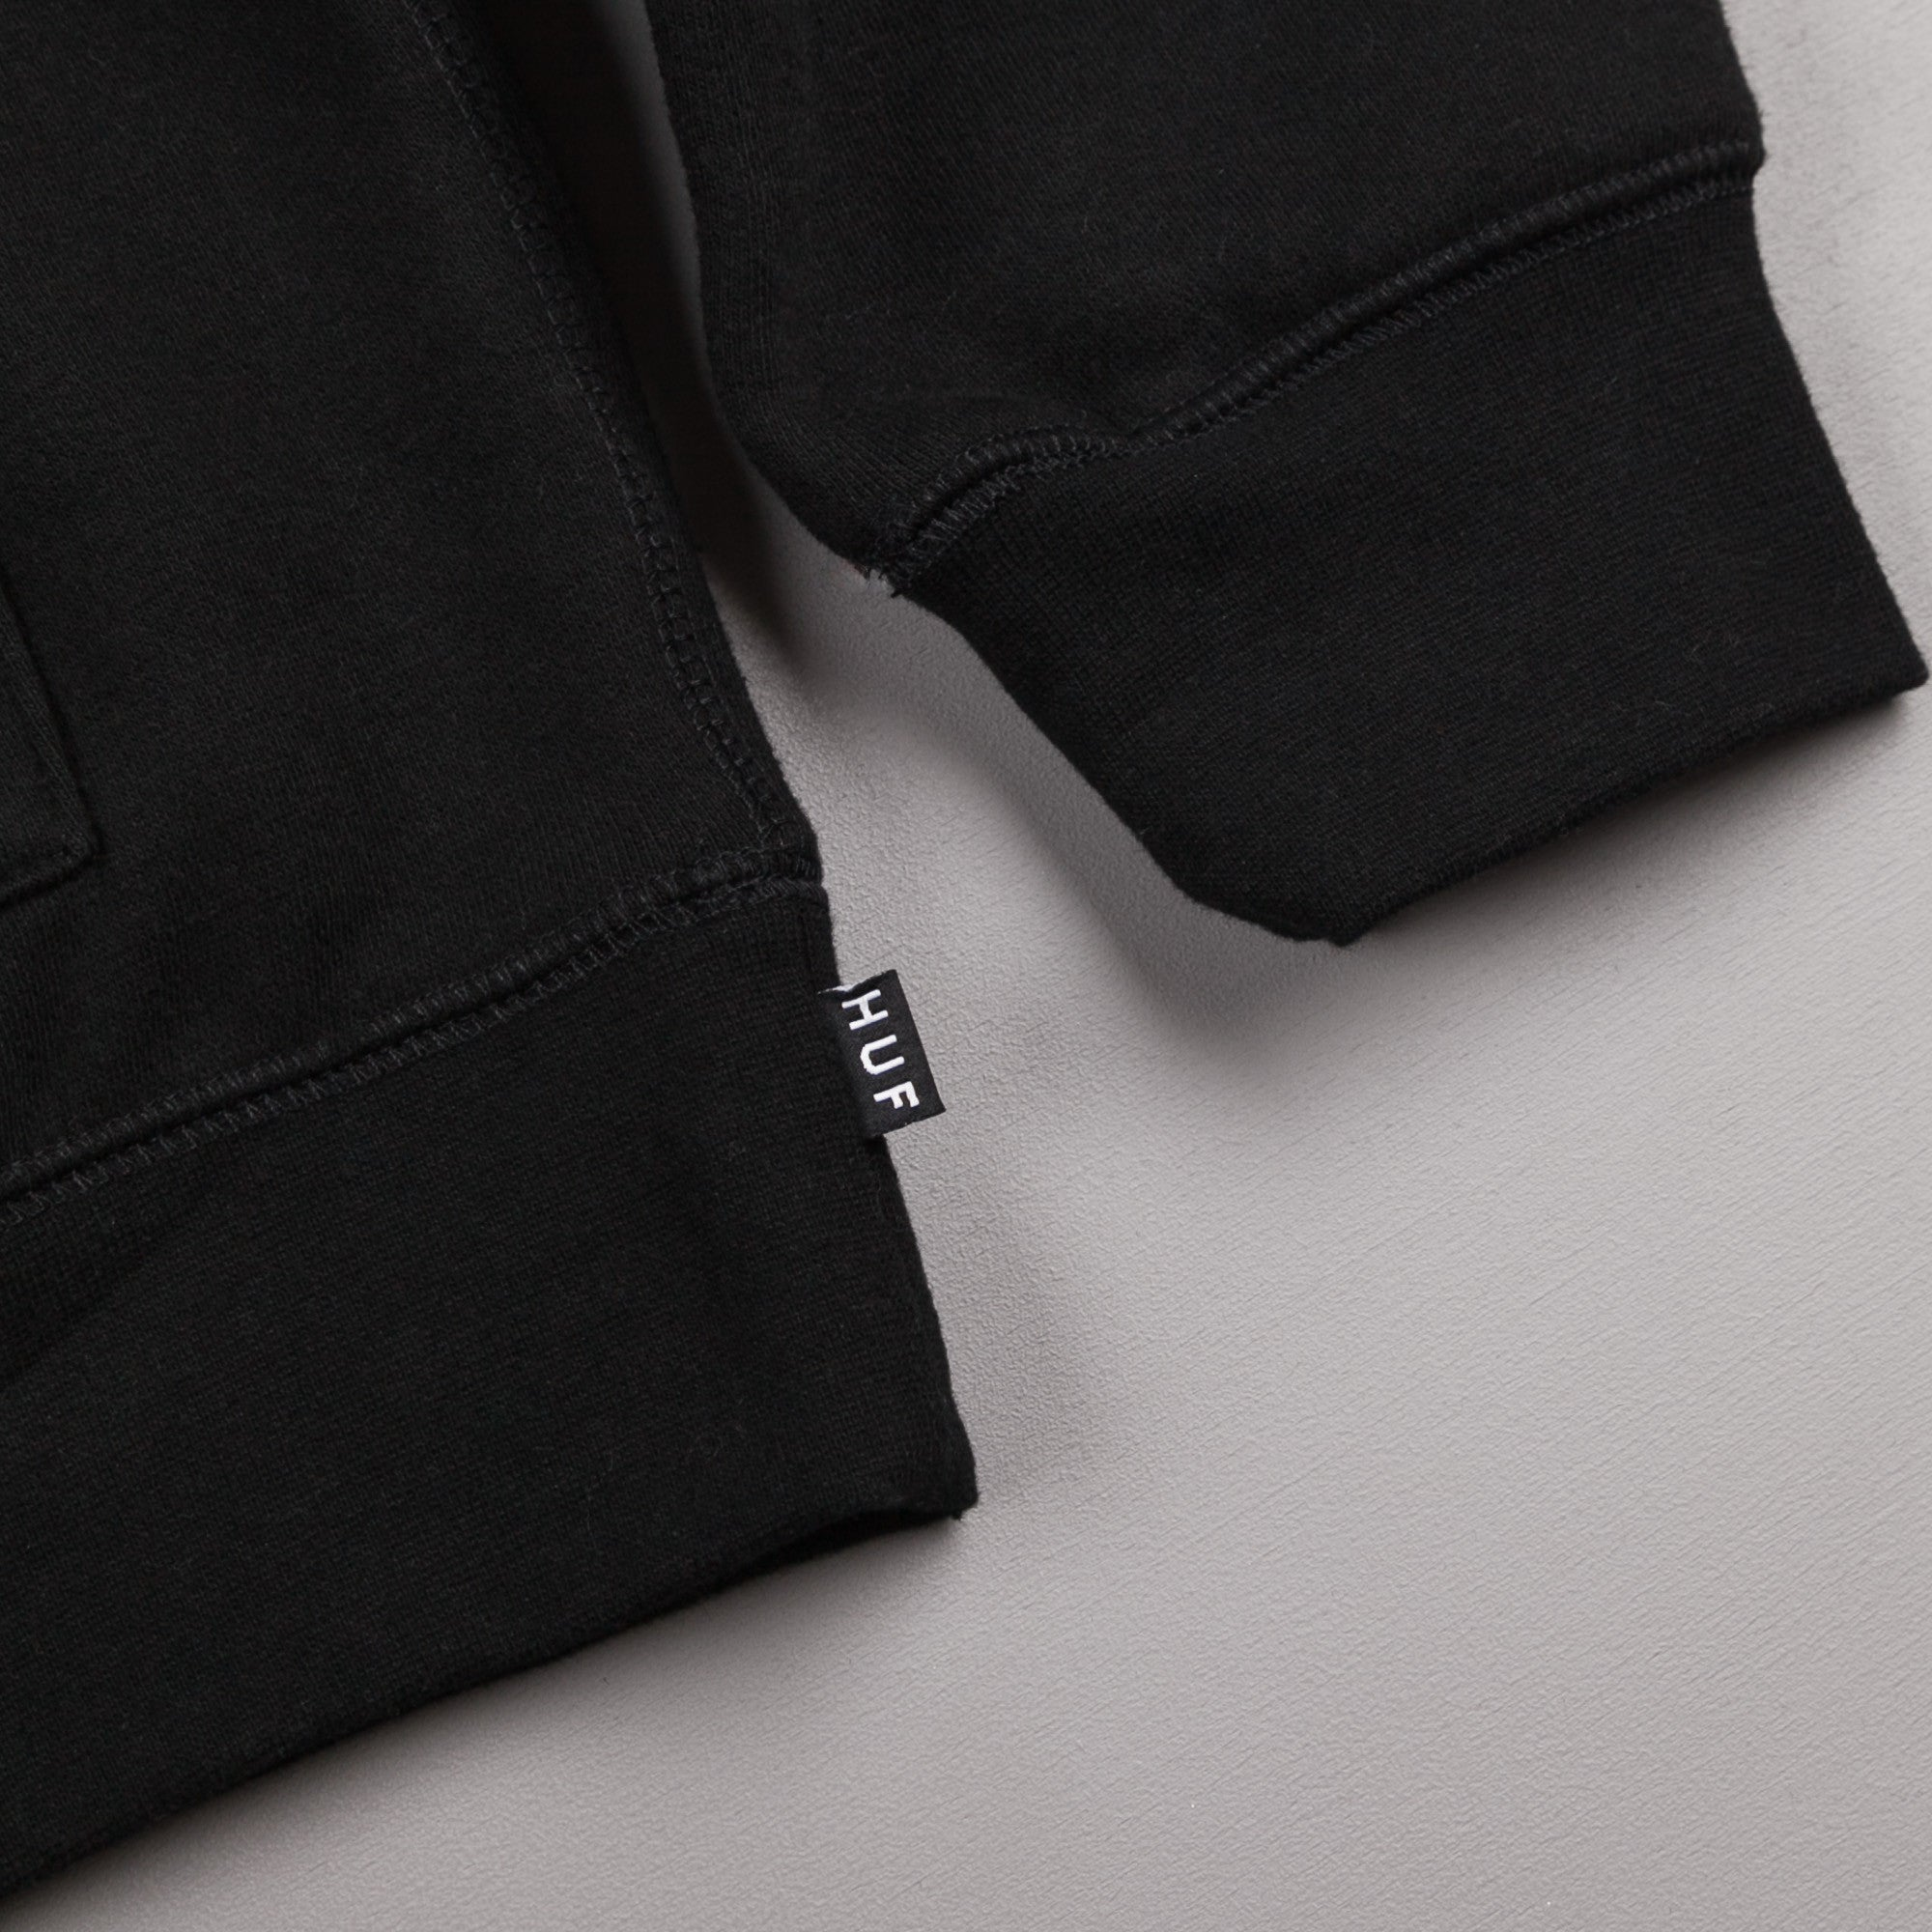 HUF Triple Triangle Hooded Sweatshirt - Black / Grey